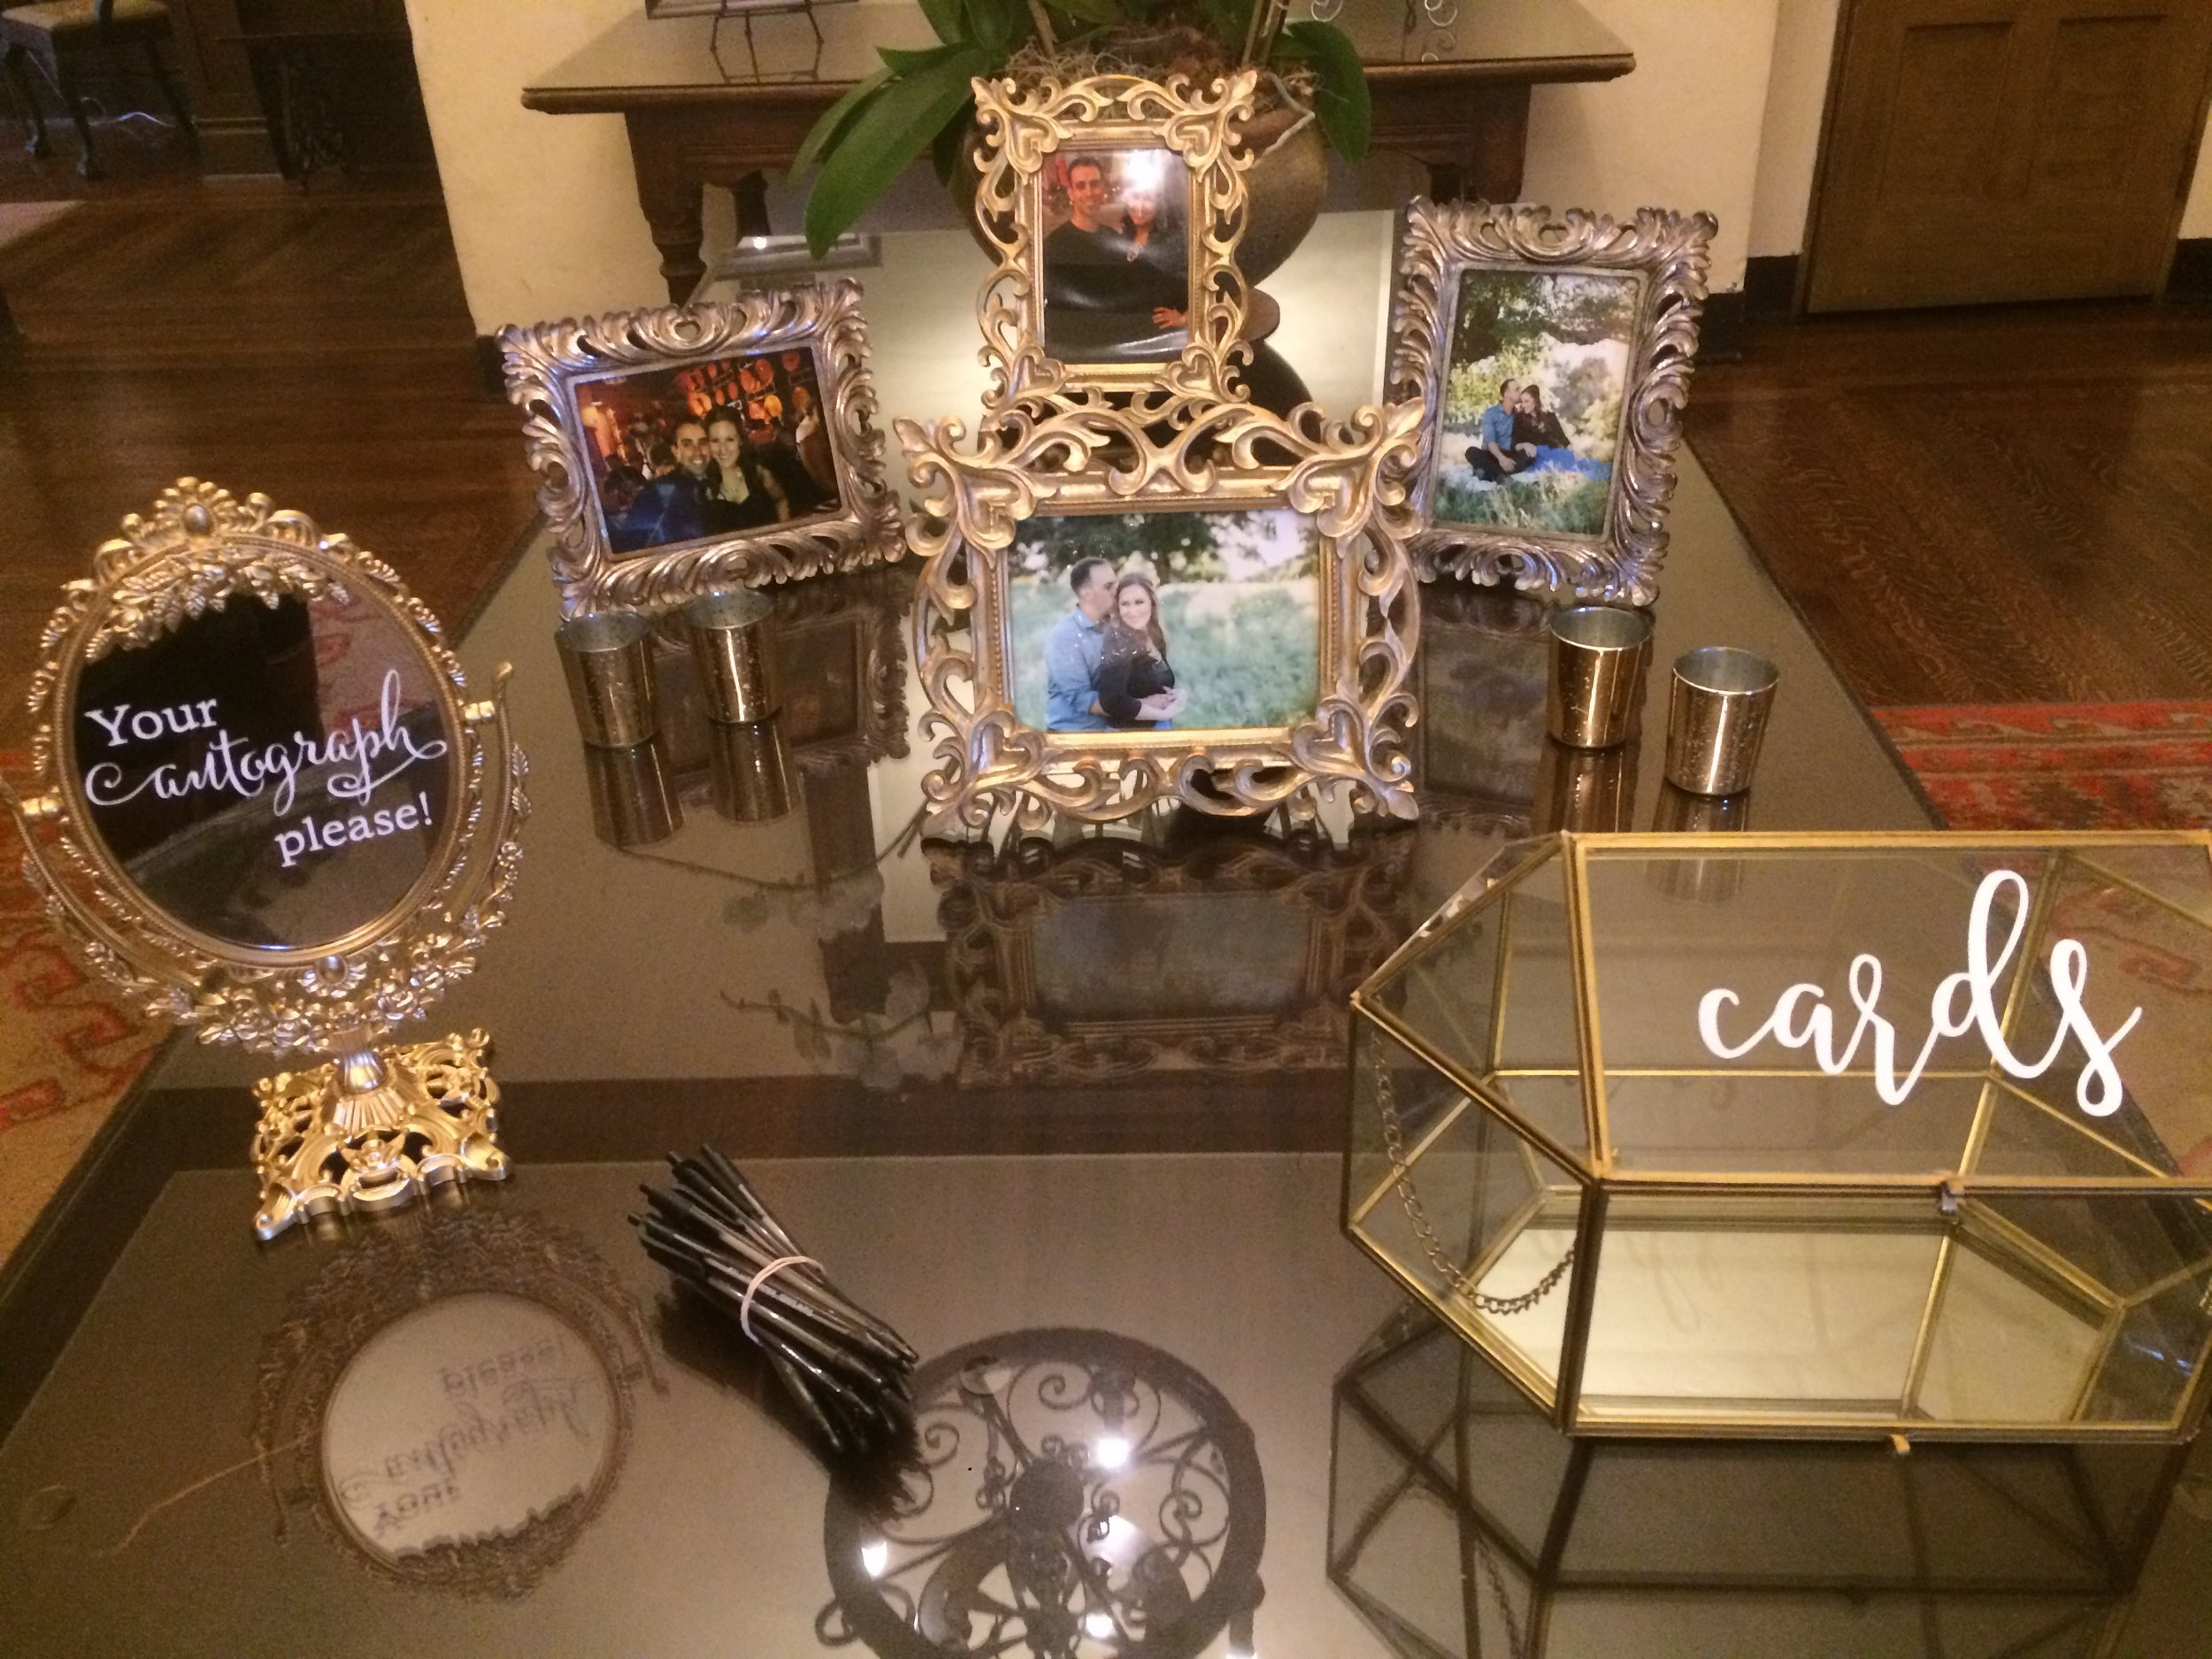 Our bride and groom's welcome table at the Riviera Mansion in Santa Barbara, California.